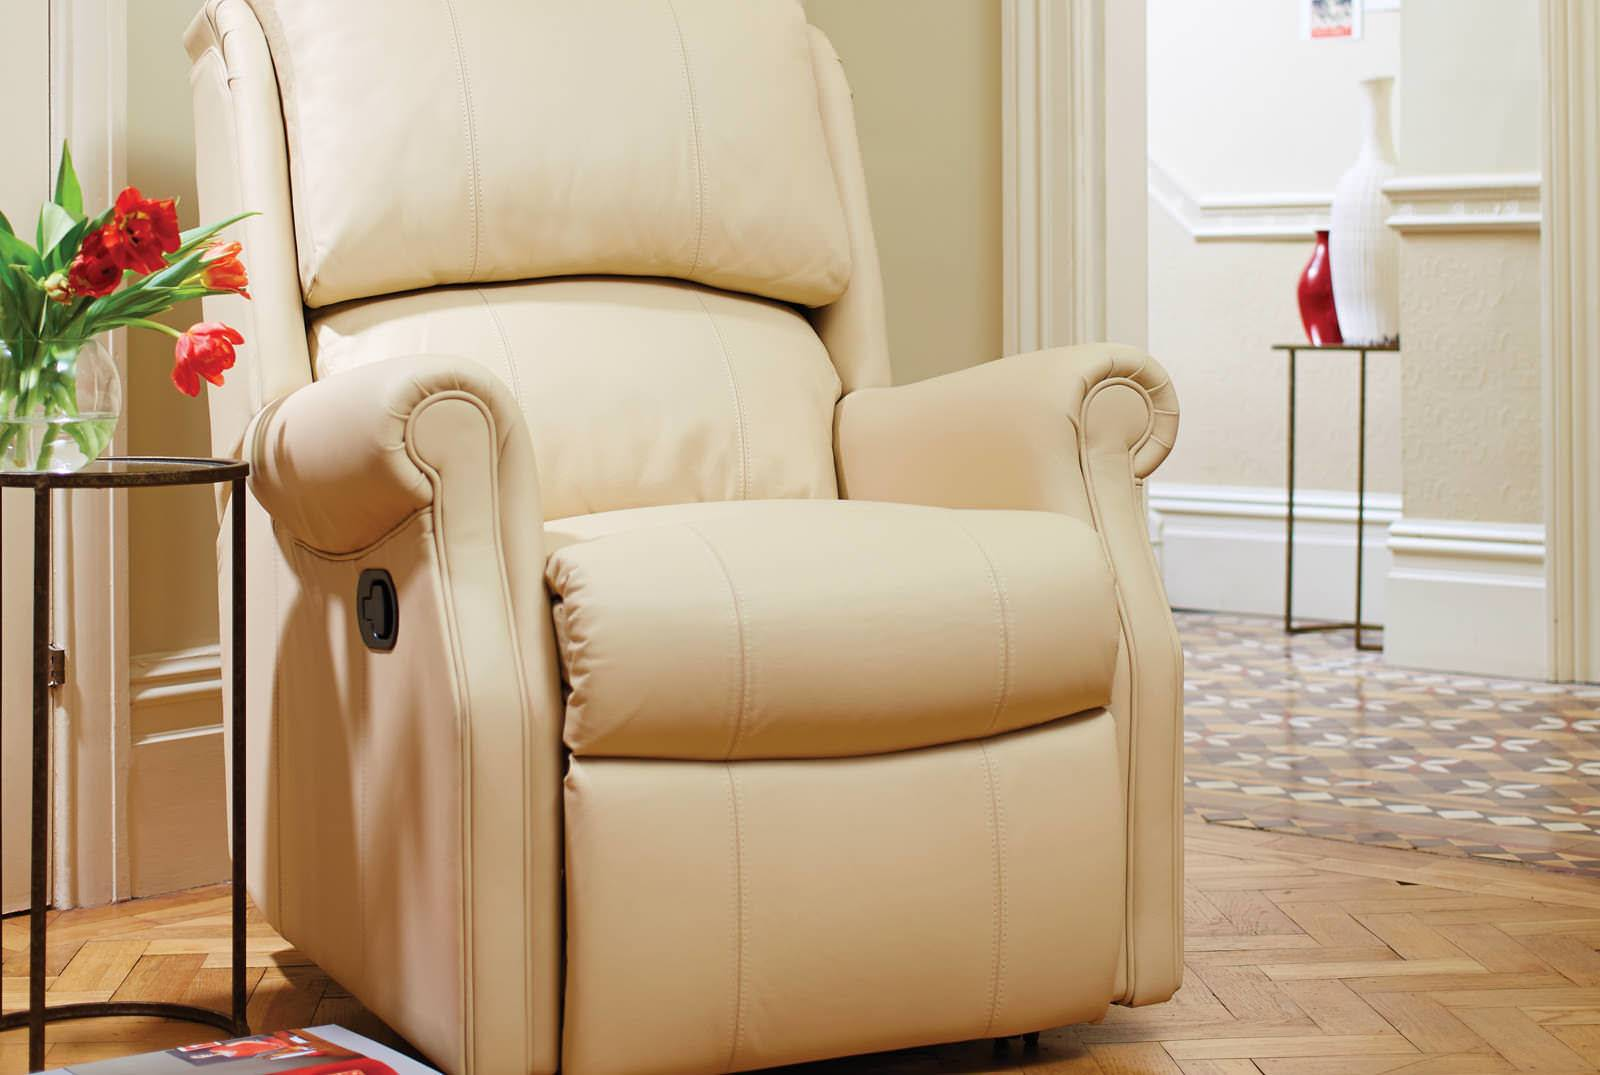 Berwick Catch Recliner in Camden Cream Leather